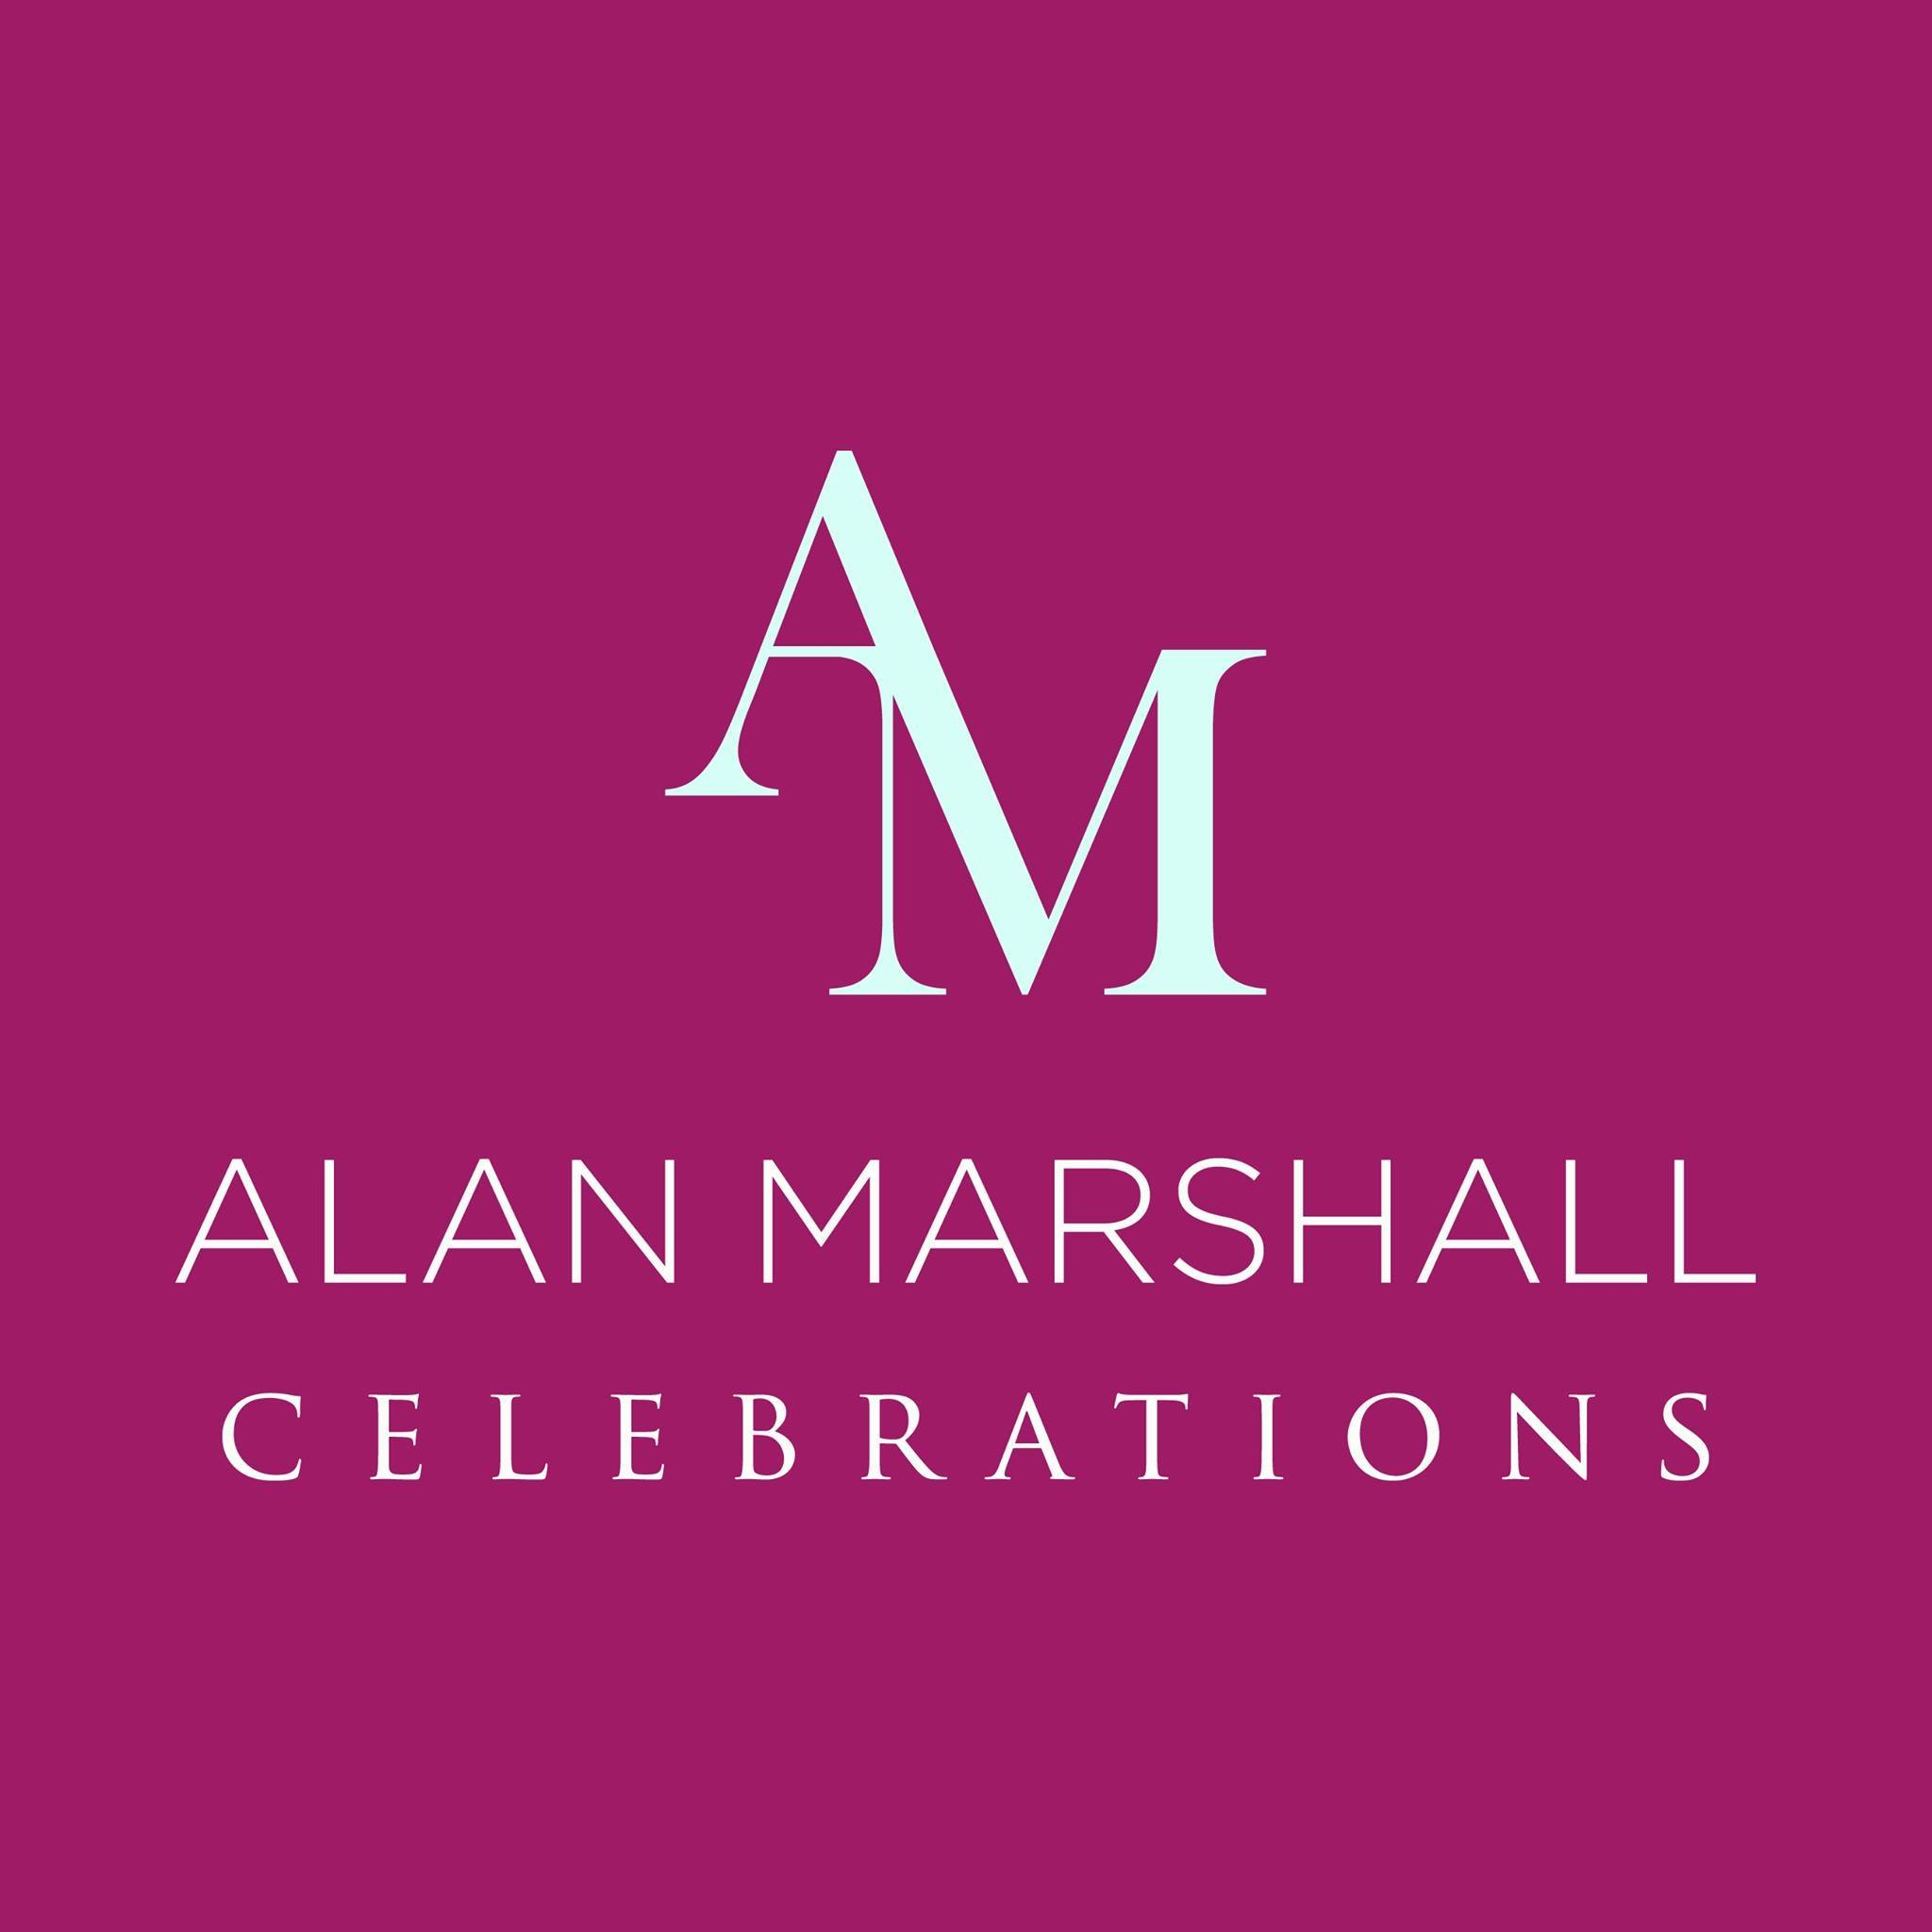 Alan Marshall Celebrations - DJ - www.amcelebrations.co.uk